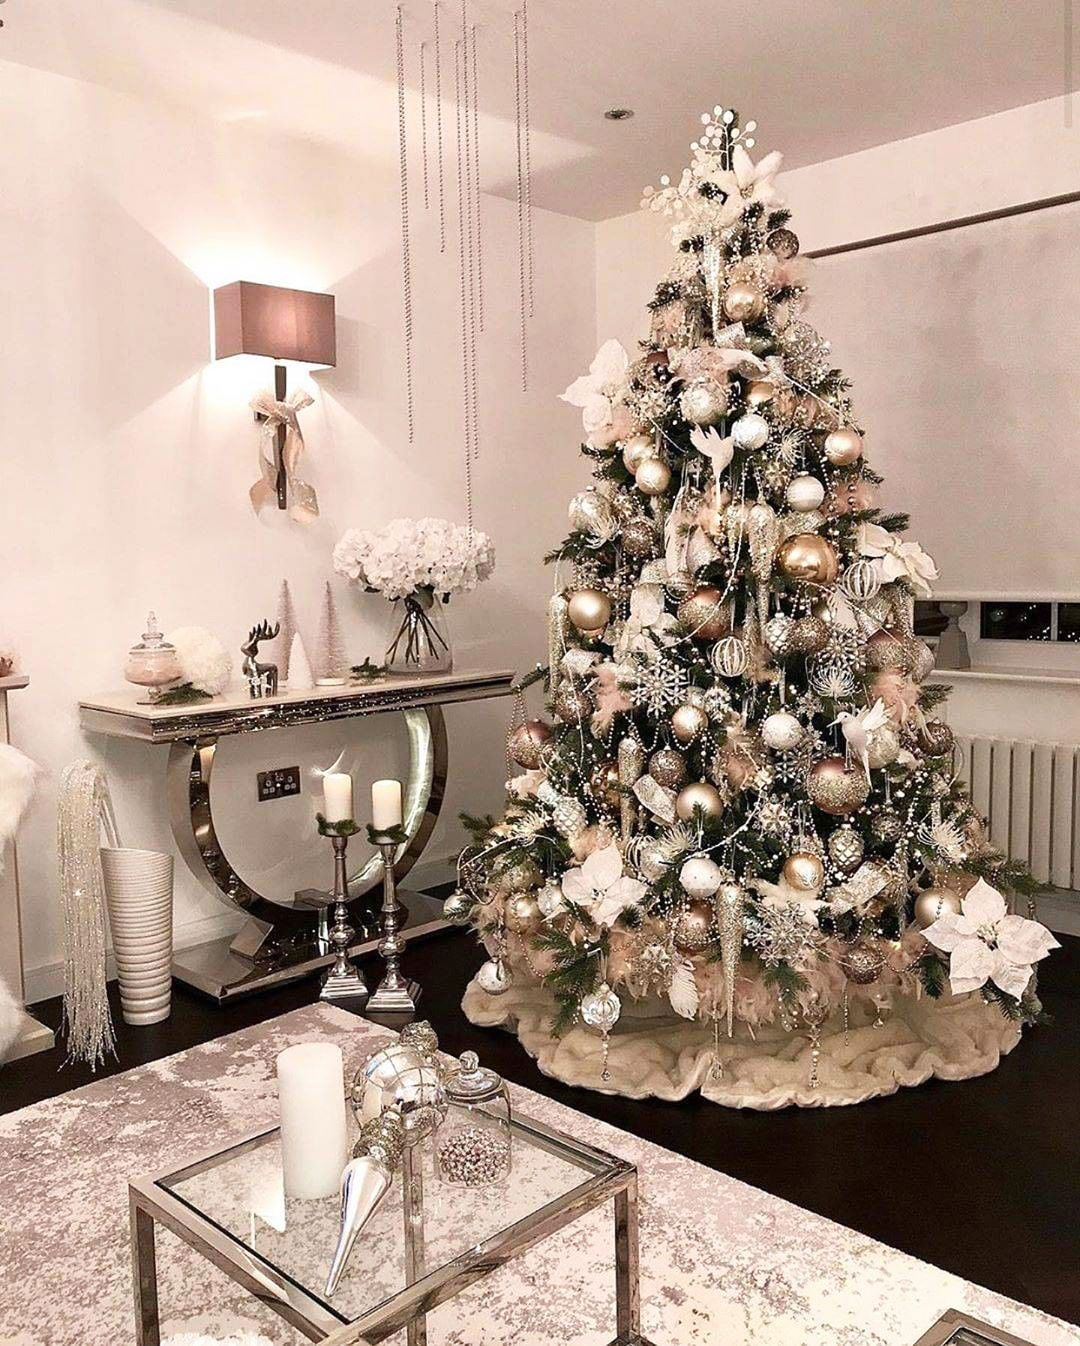 49 Simple Christmas Tree Decorating Ideas In 2020 Best Online Furniture Stores Decor Online Furniture Stores